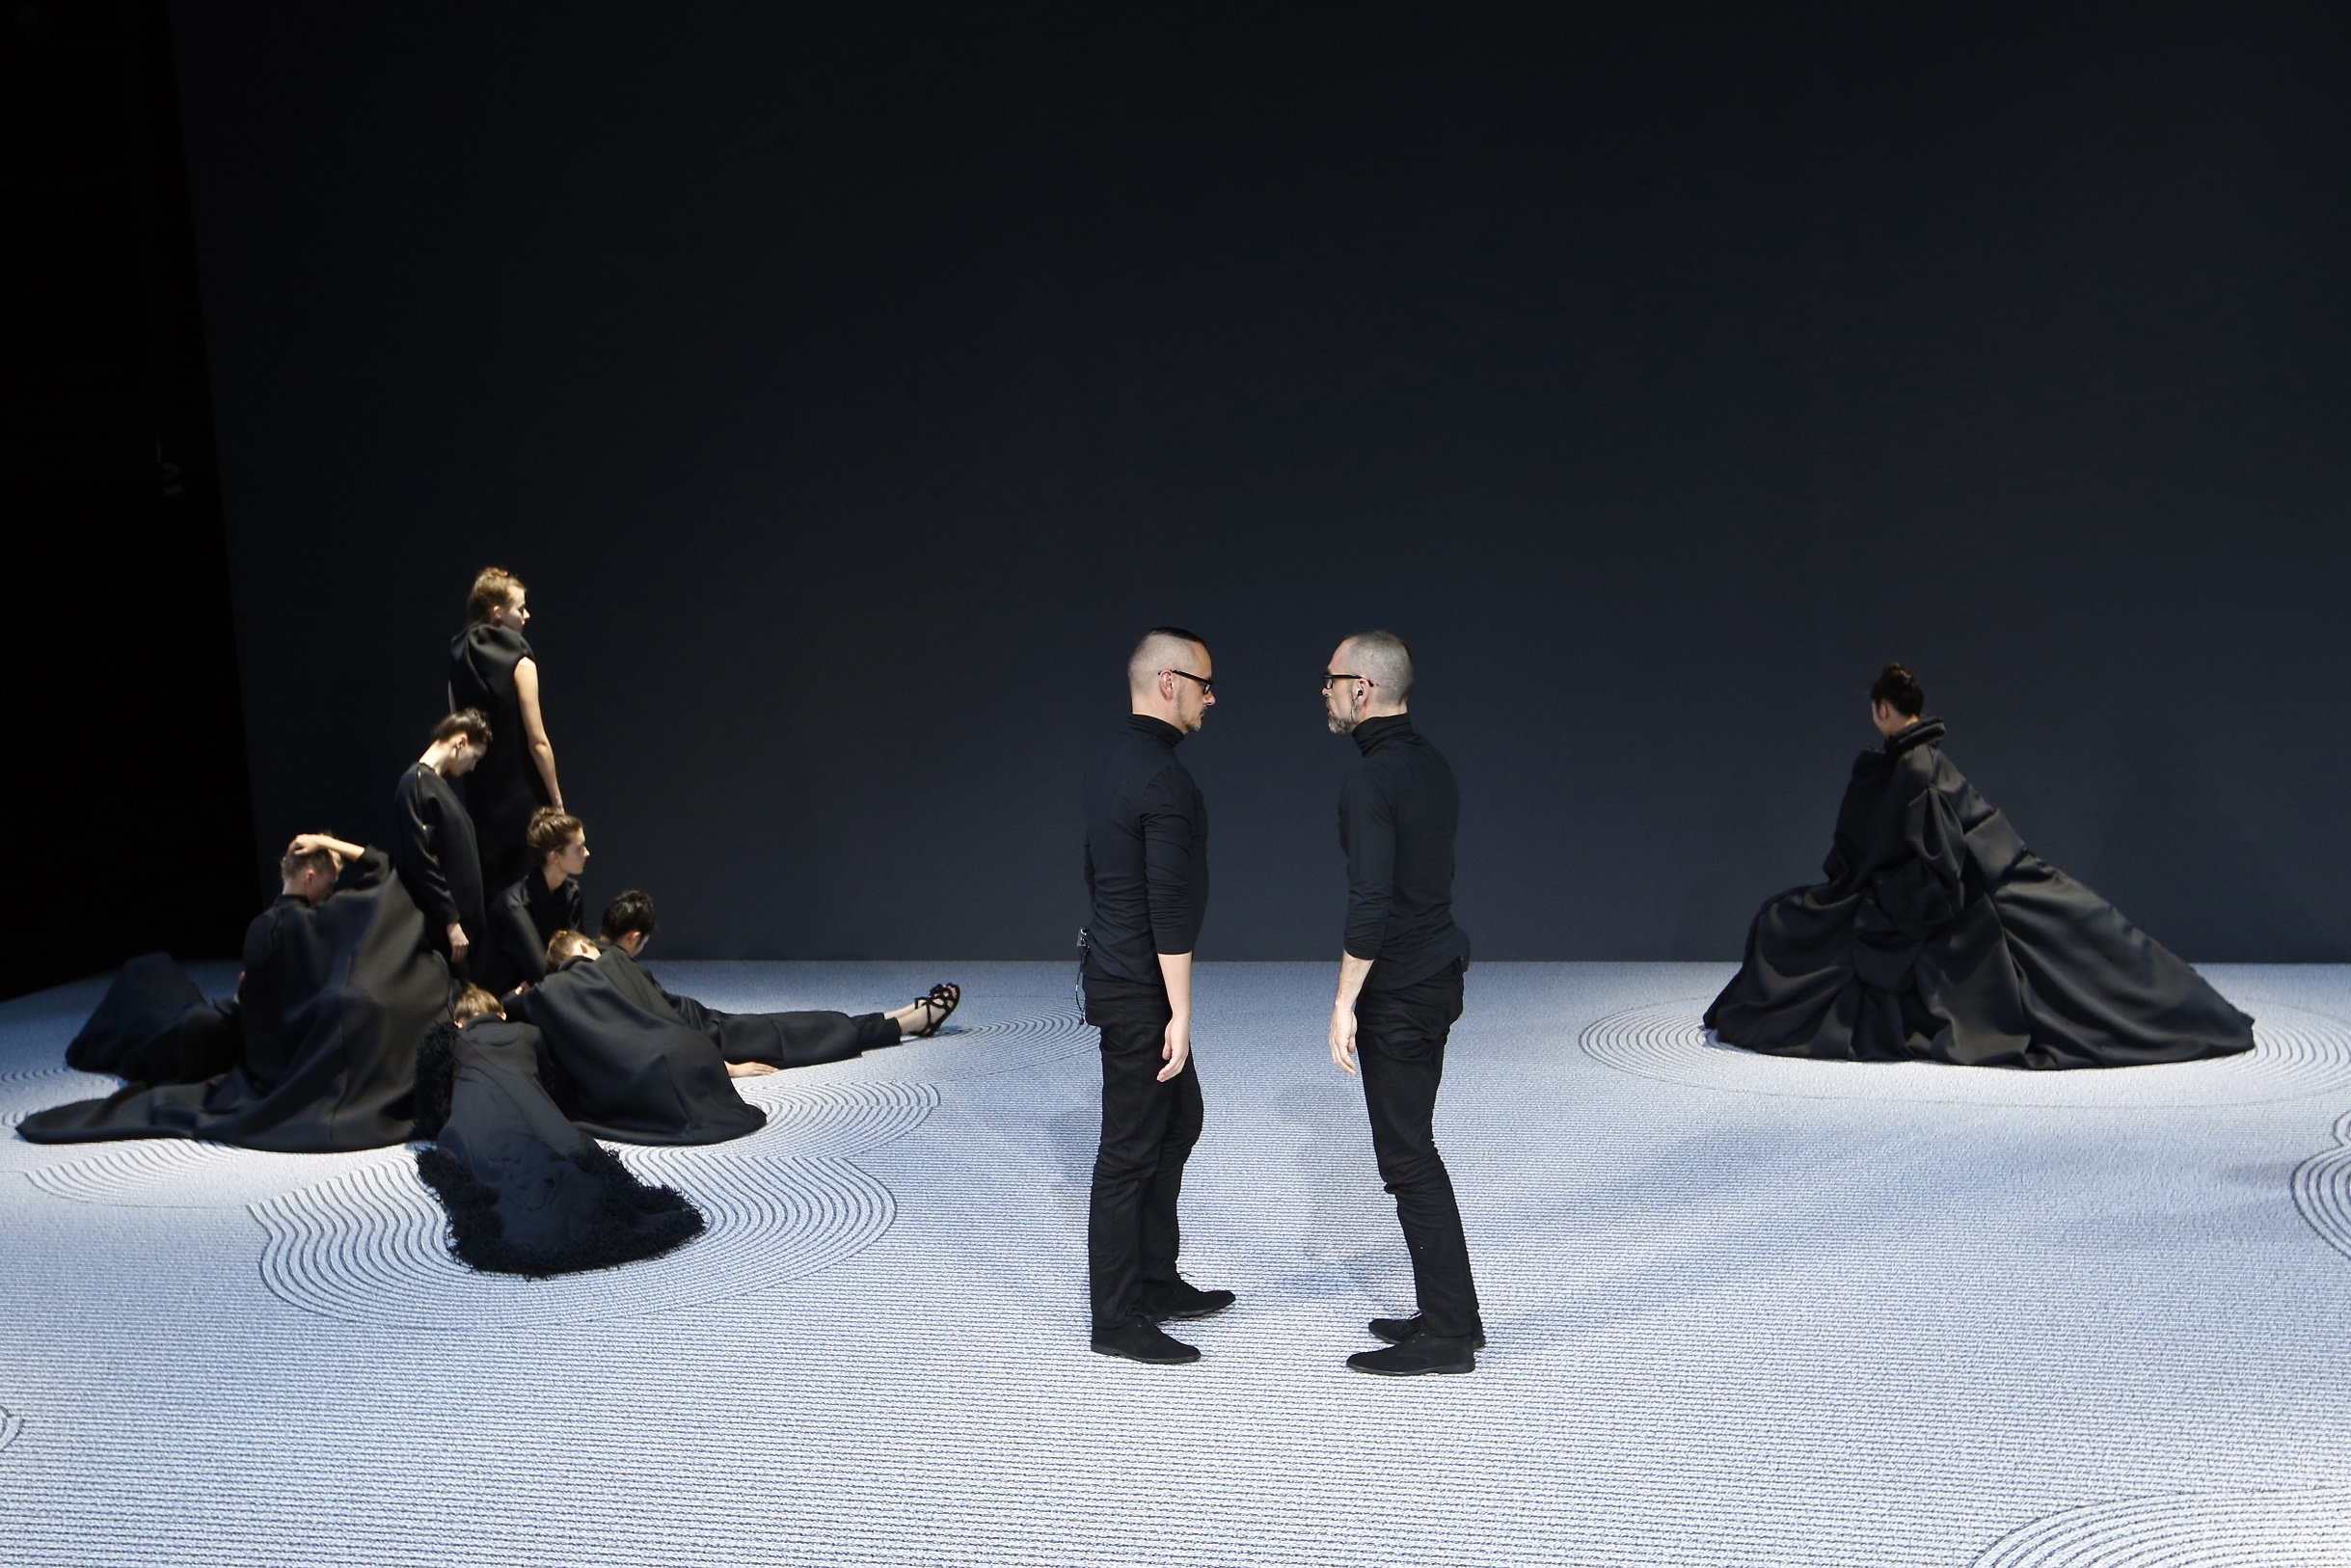 Dutch fashion designer Rolf Snoeren (R) and Viktor Horsing (C) stand next to models presenting their creations during the Viktor&Rolf Haute Couture Fall-Winter 2013/2014 collection show, on July 3, 2013 in Paris. AFP PHOTO/FRANCOIS GUILLOT